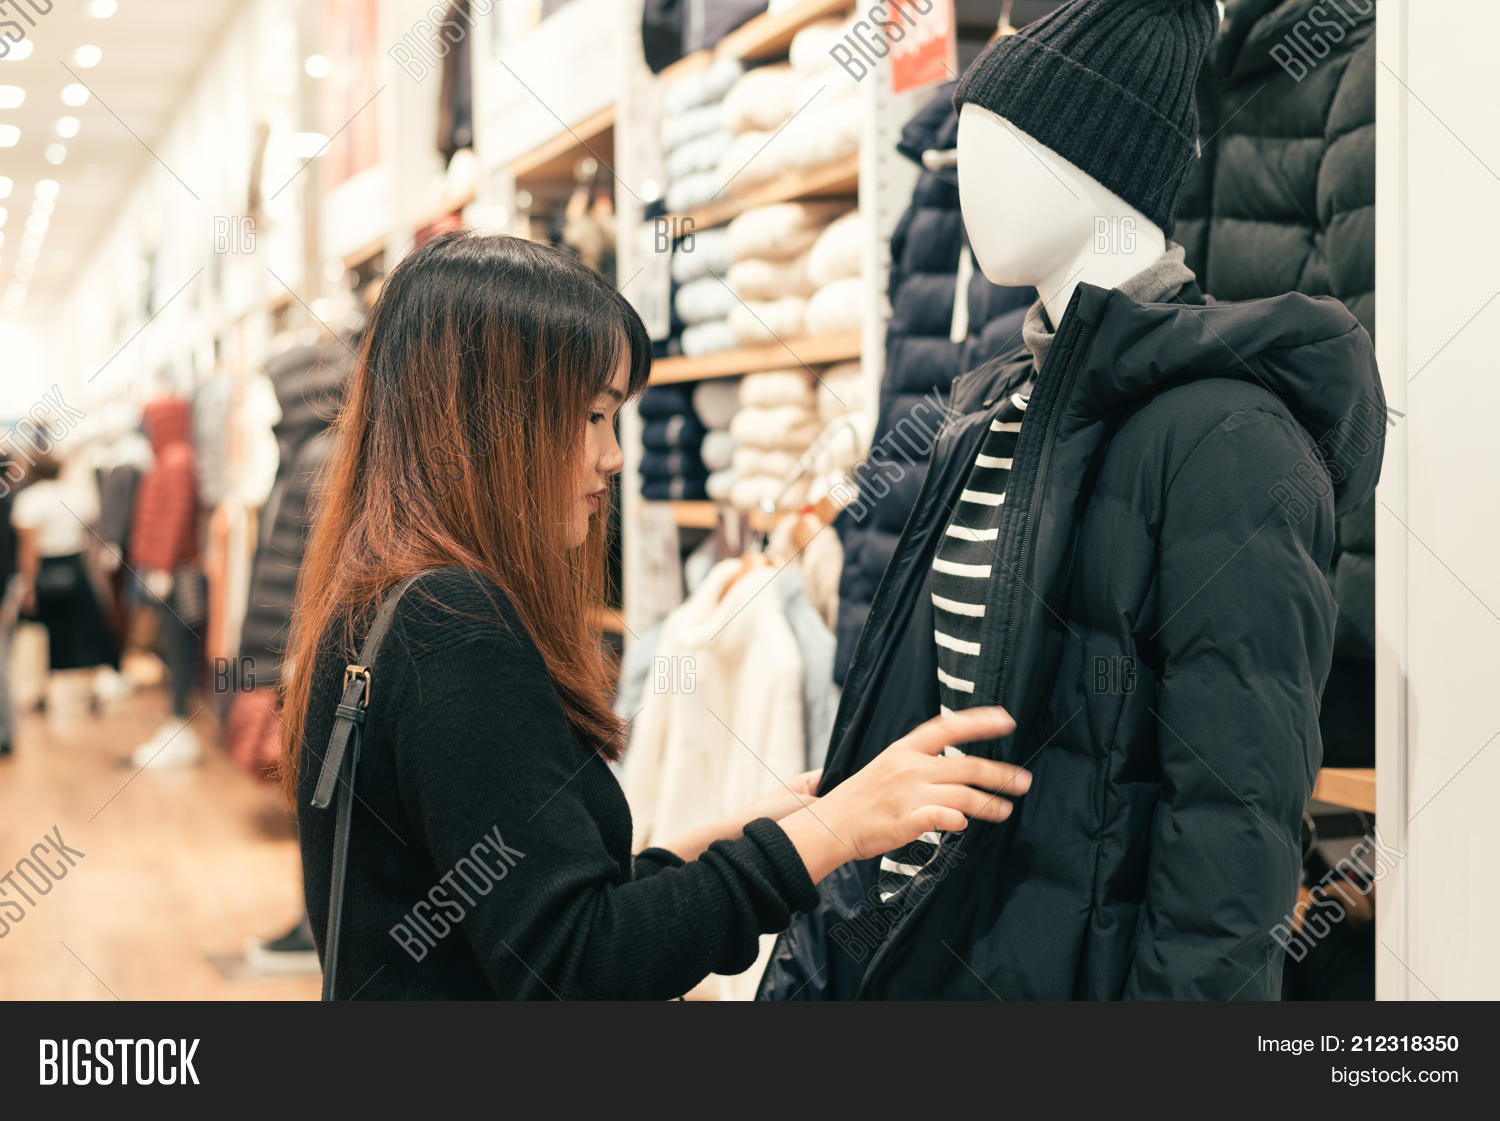 8f7bac8382c Half body shot of a happy asian young woman with shoulder bag looking at  clothes hanging